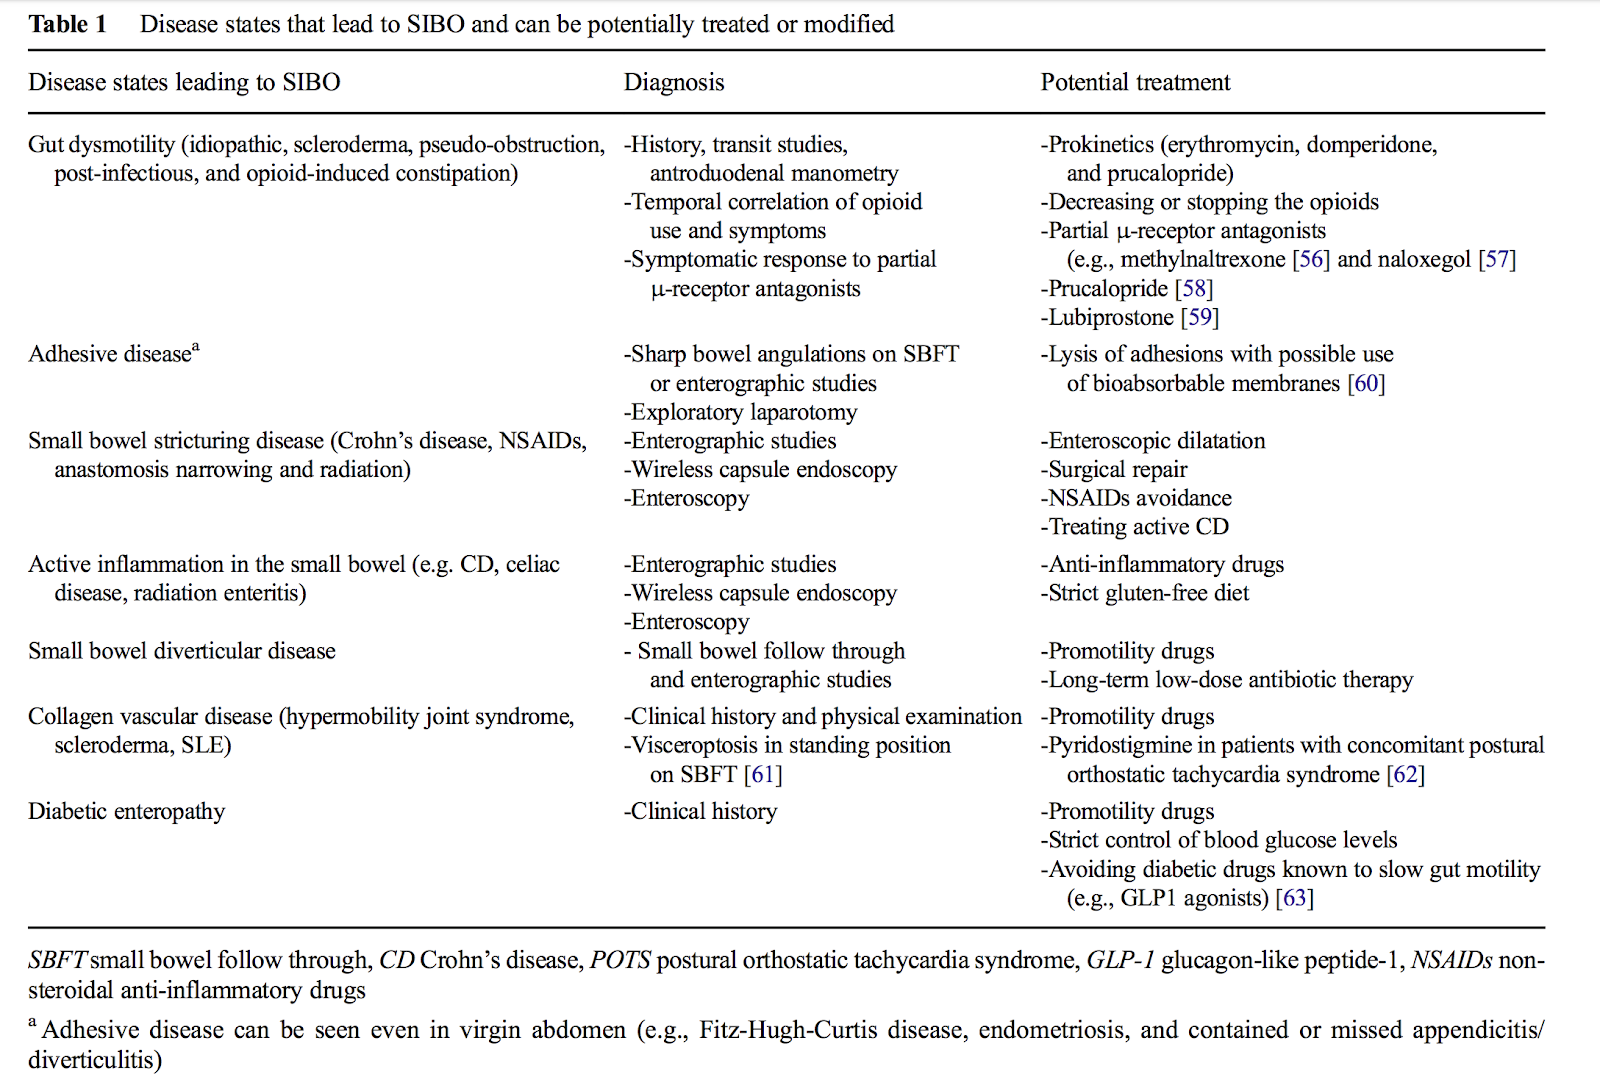 Image taken from: How to Test and Treat Small Intestinal Bacterial Overgrowth: an Evidence-Based Approach